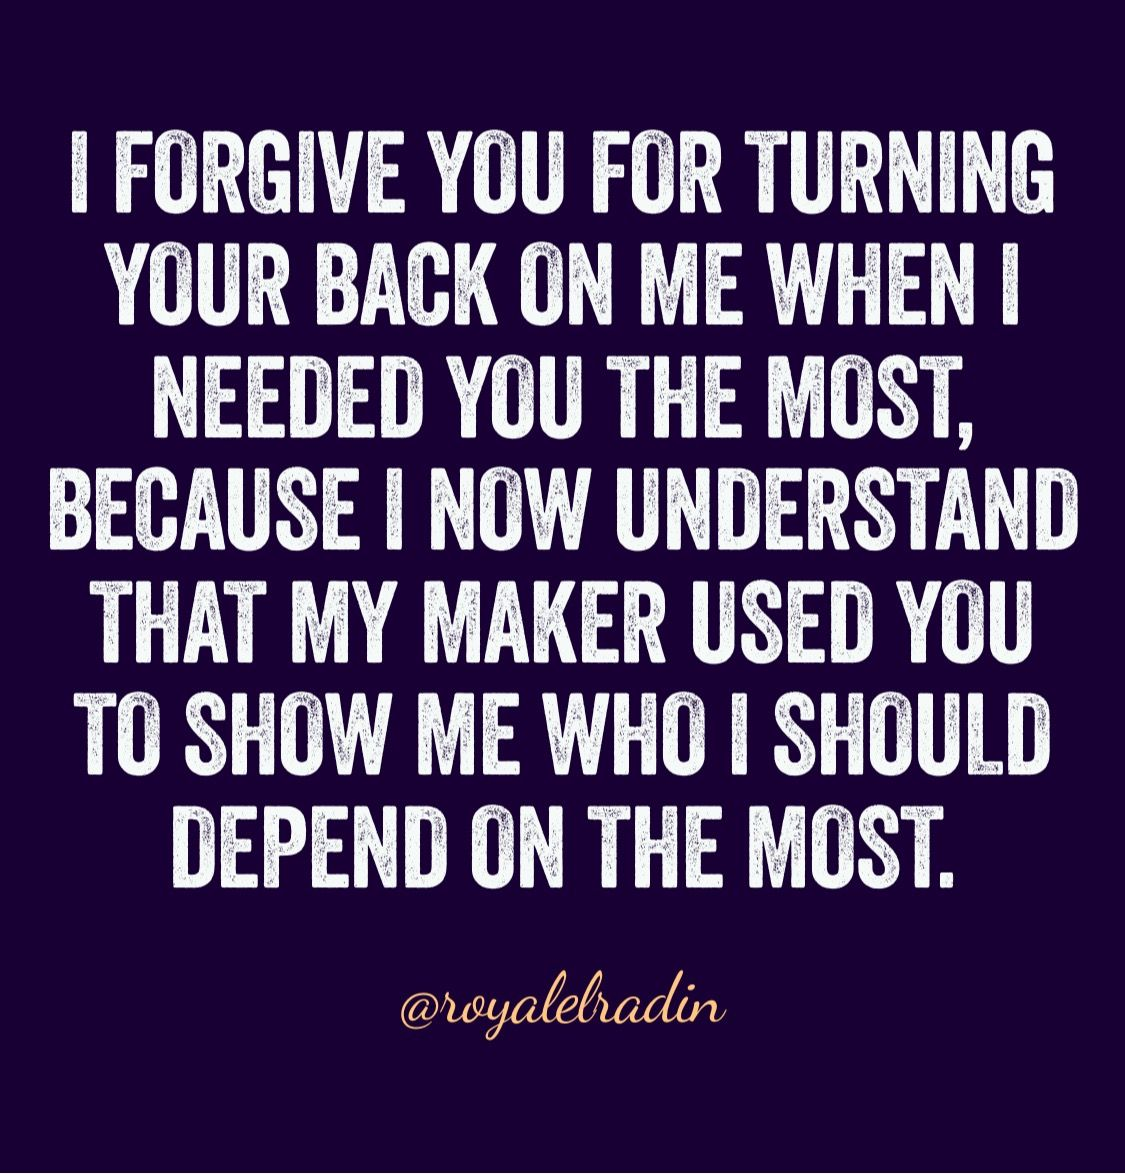 I Forgive You For Turning Your Back On Me When I Needed You The Most